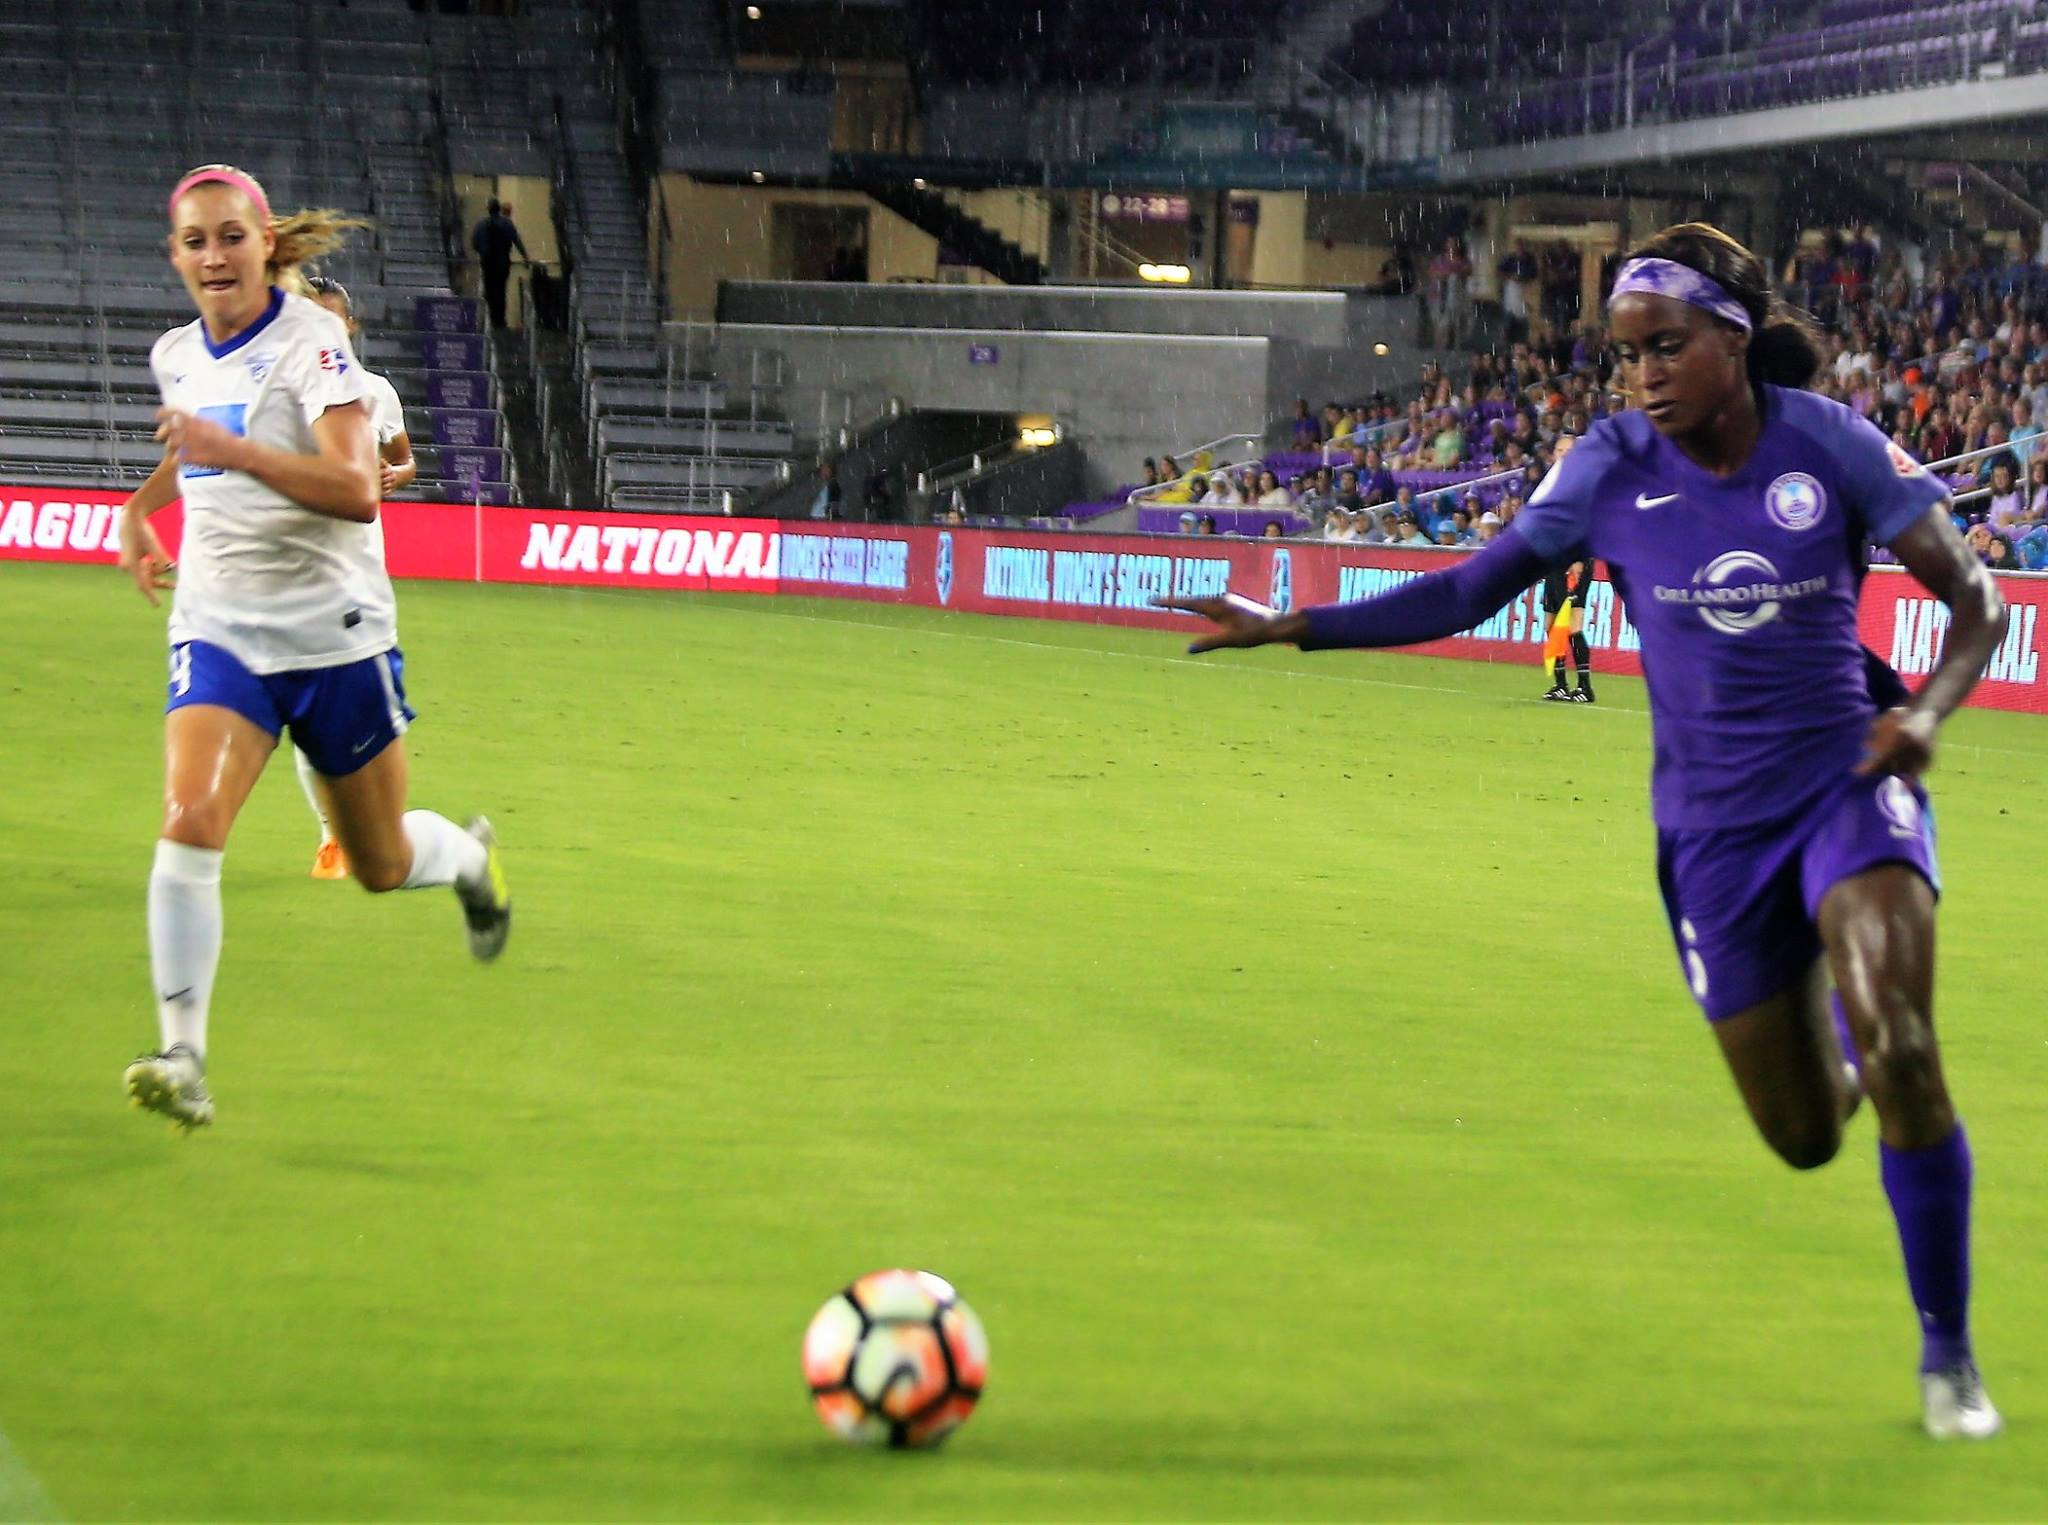 ORLANDO, Fla. (FNN SPORTS) - Orlando Pride forward Chioma Ubogagu (pictured here against the Boston Breakers at Orlando City Stadium) received her first call-up to the senior U.S. Women's National Team on Tuesday afternoon. Photo: Willie David/Florida National News.